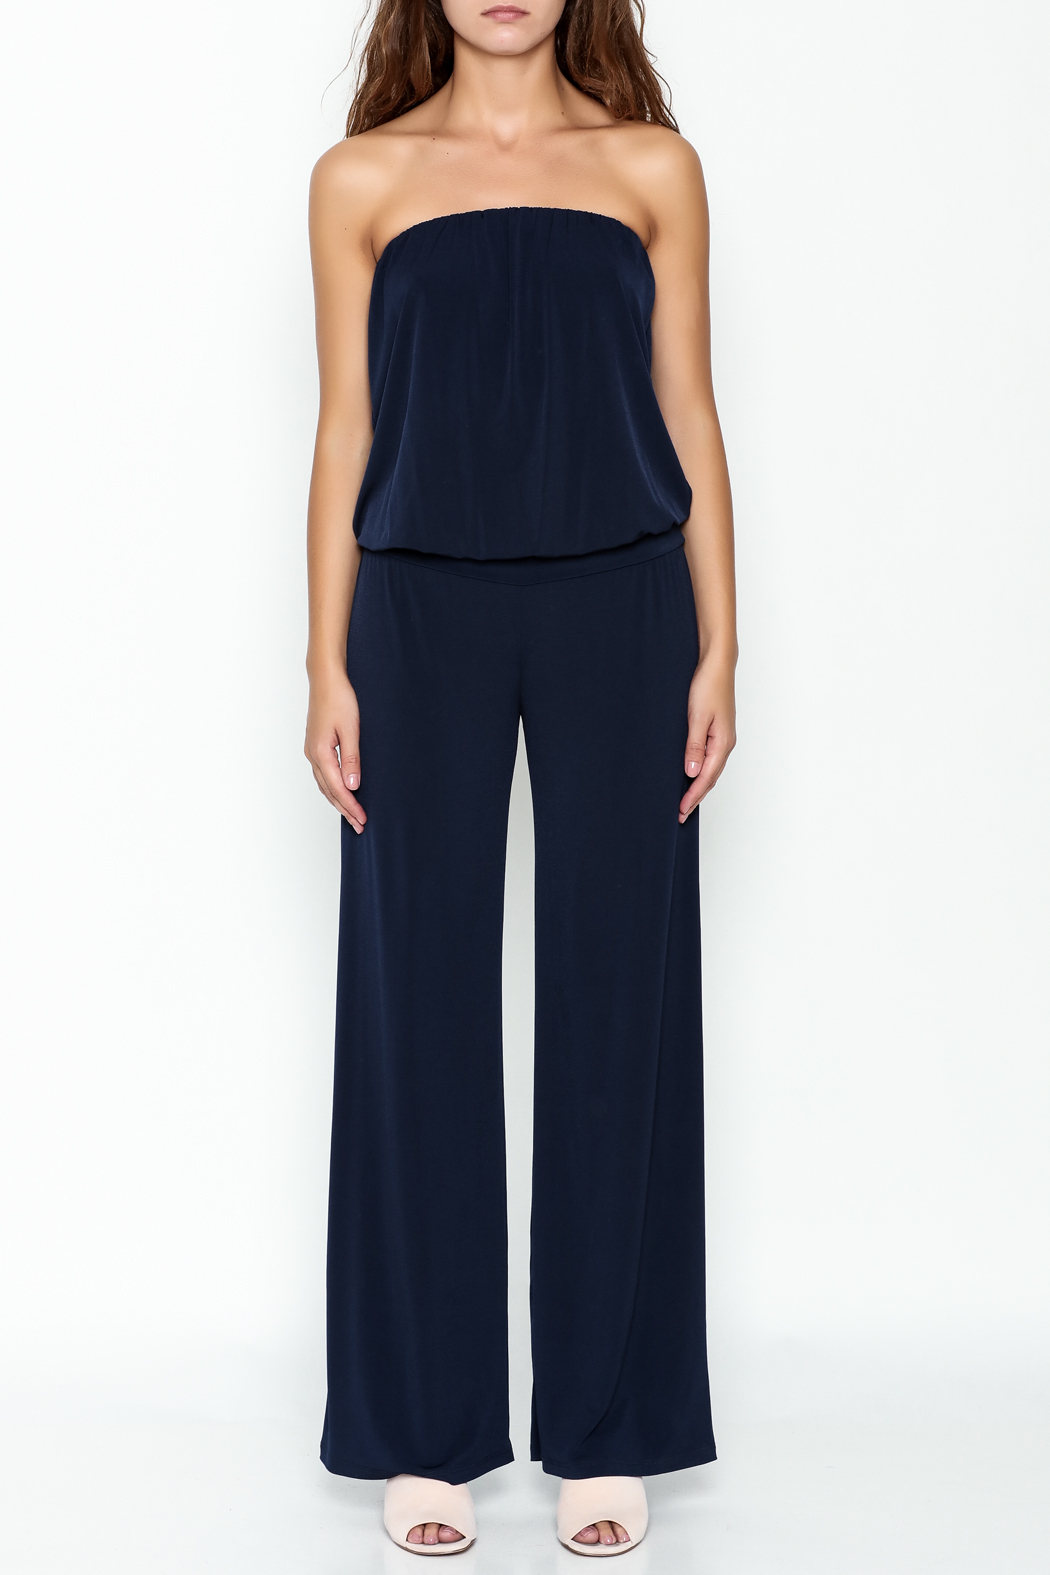 Veronica M Jane Jumpsuit - Front Full Image